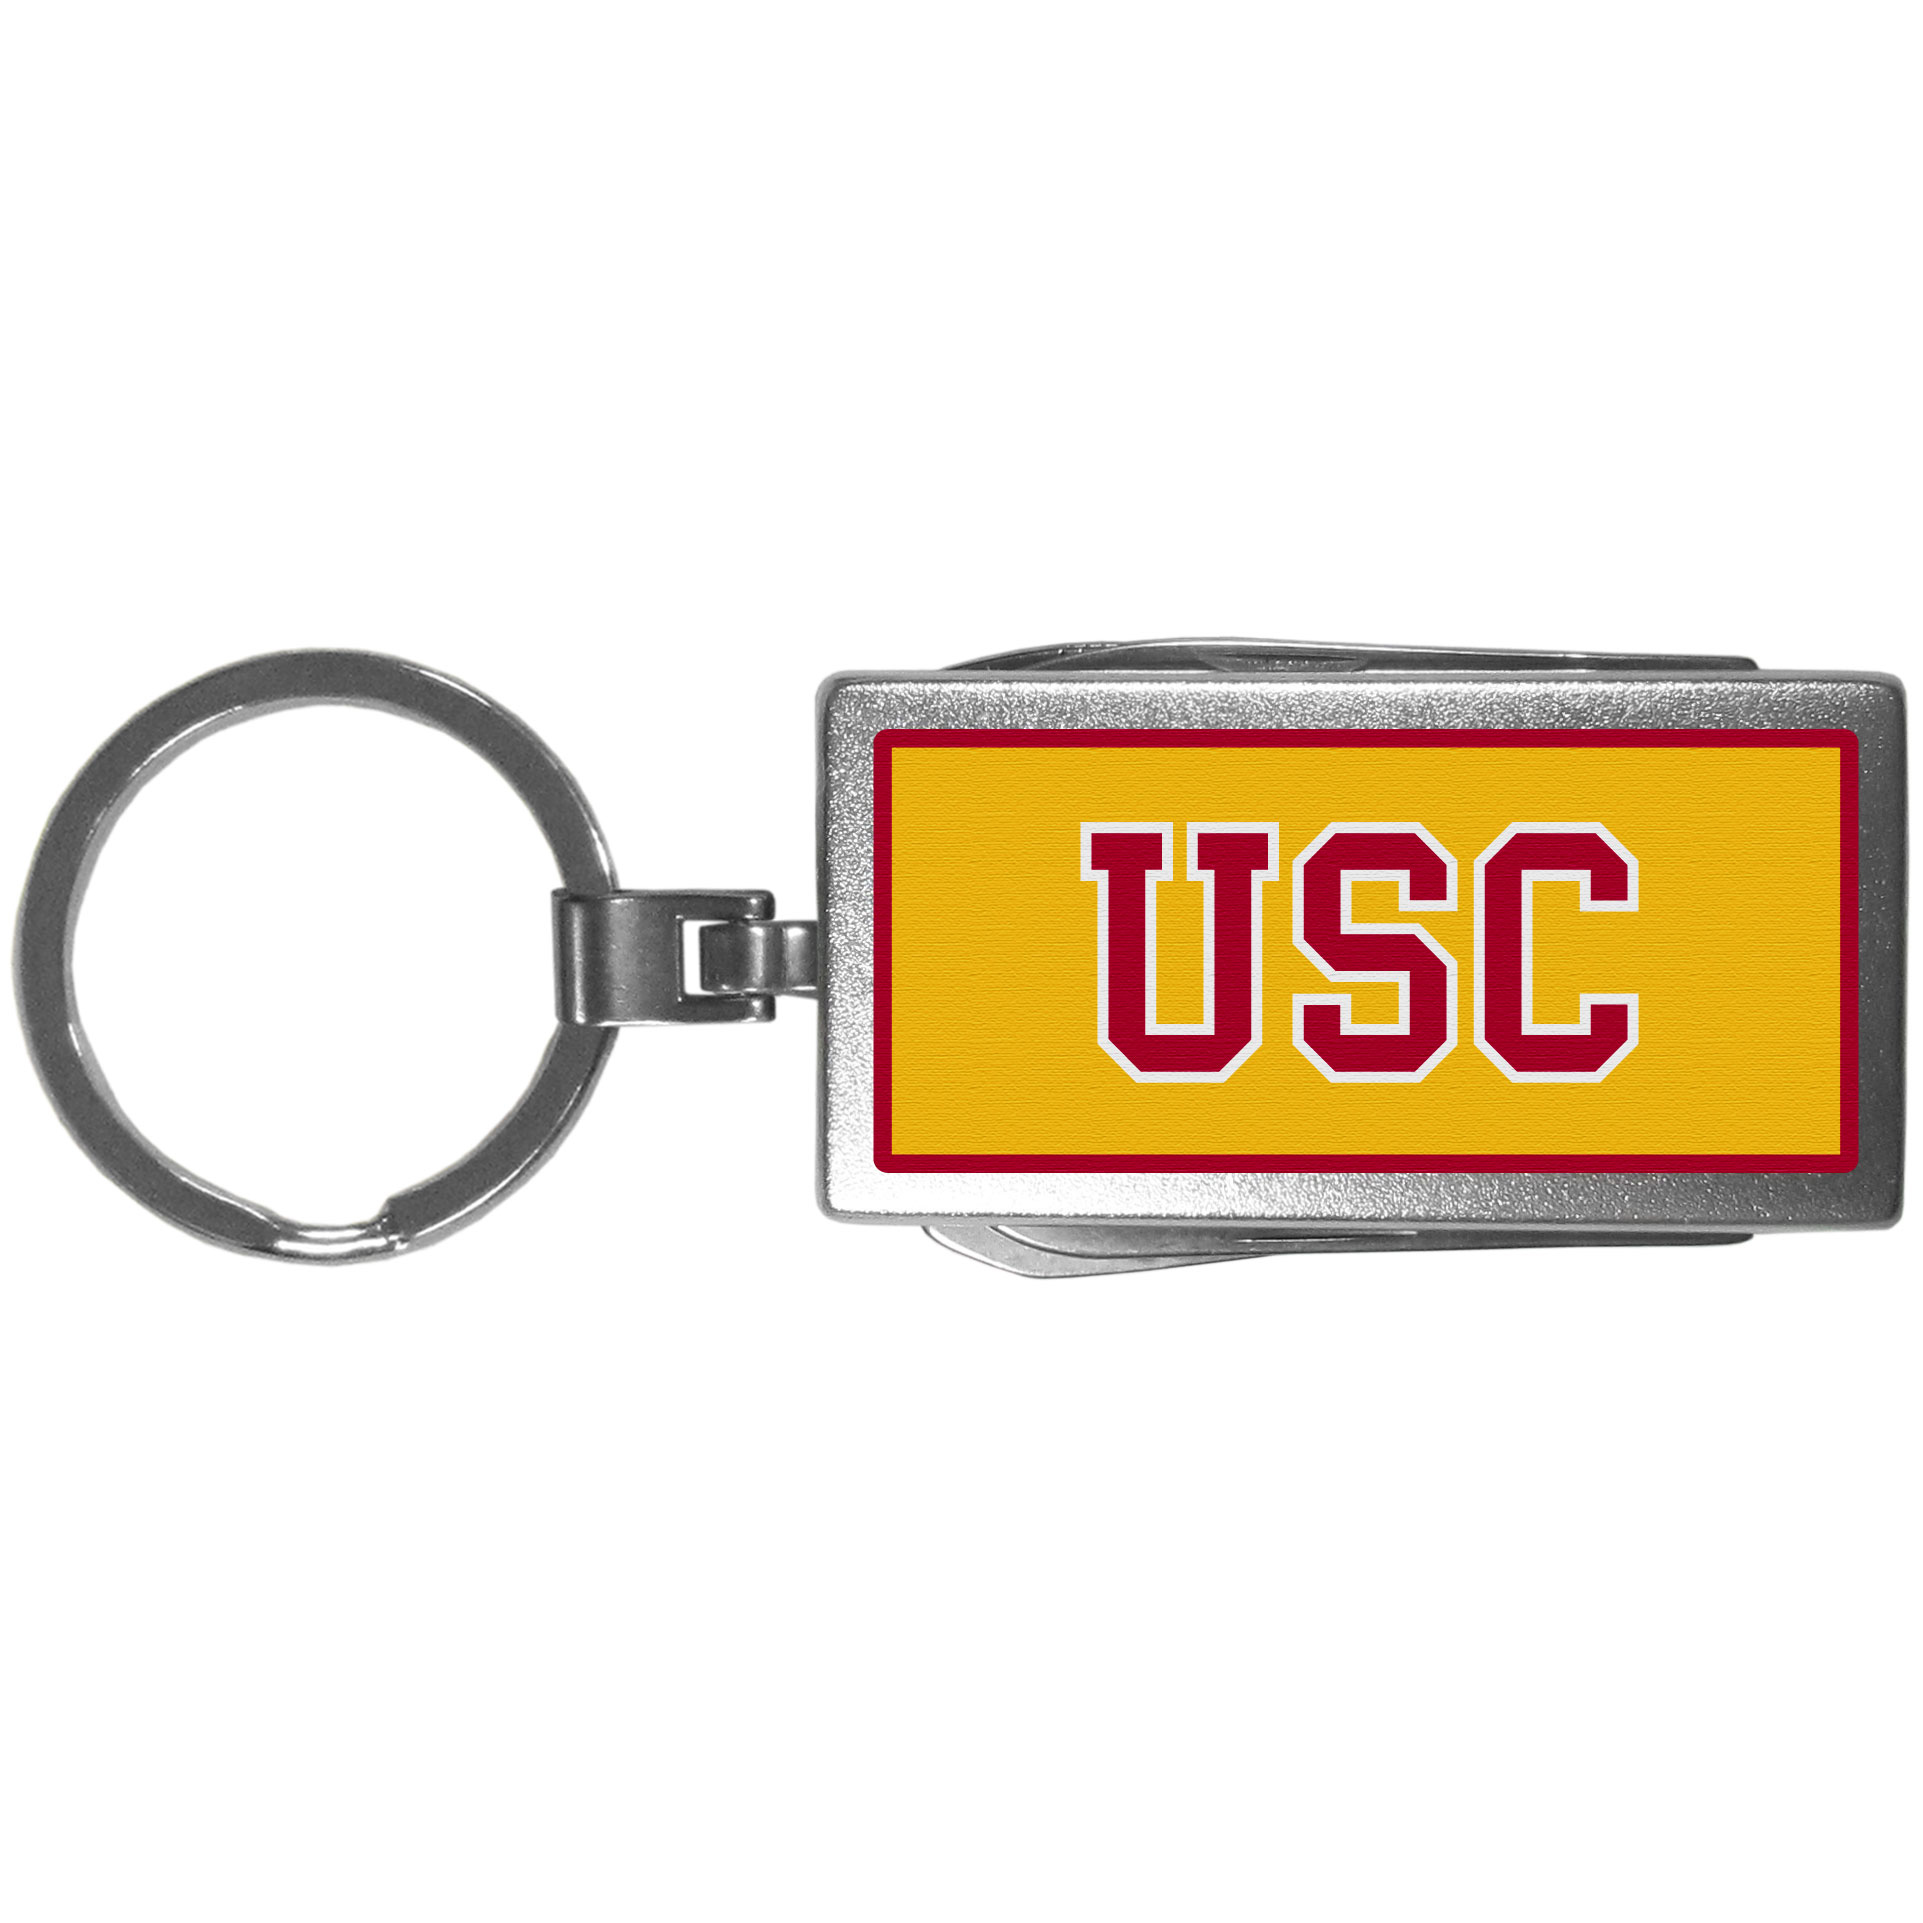 USC Trojans Multi-tool Key Chain, Logo - Be the hero at the tailgate, camping, or on a Friday night with your USC Trojans Multi-Tool Keychain which comes complete with bottle opener, scissors, knife, nail file and screw driver. Be it opening a package or a beverage Siskiyou's Multi-Tool Keychain goes wherever your keys do. The keychain hangs at 4 inches long when closed.